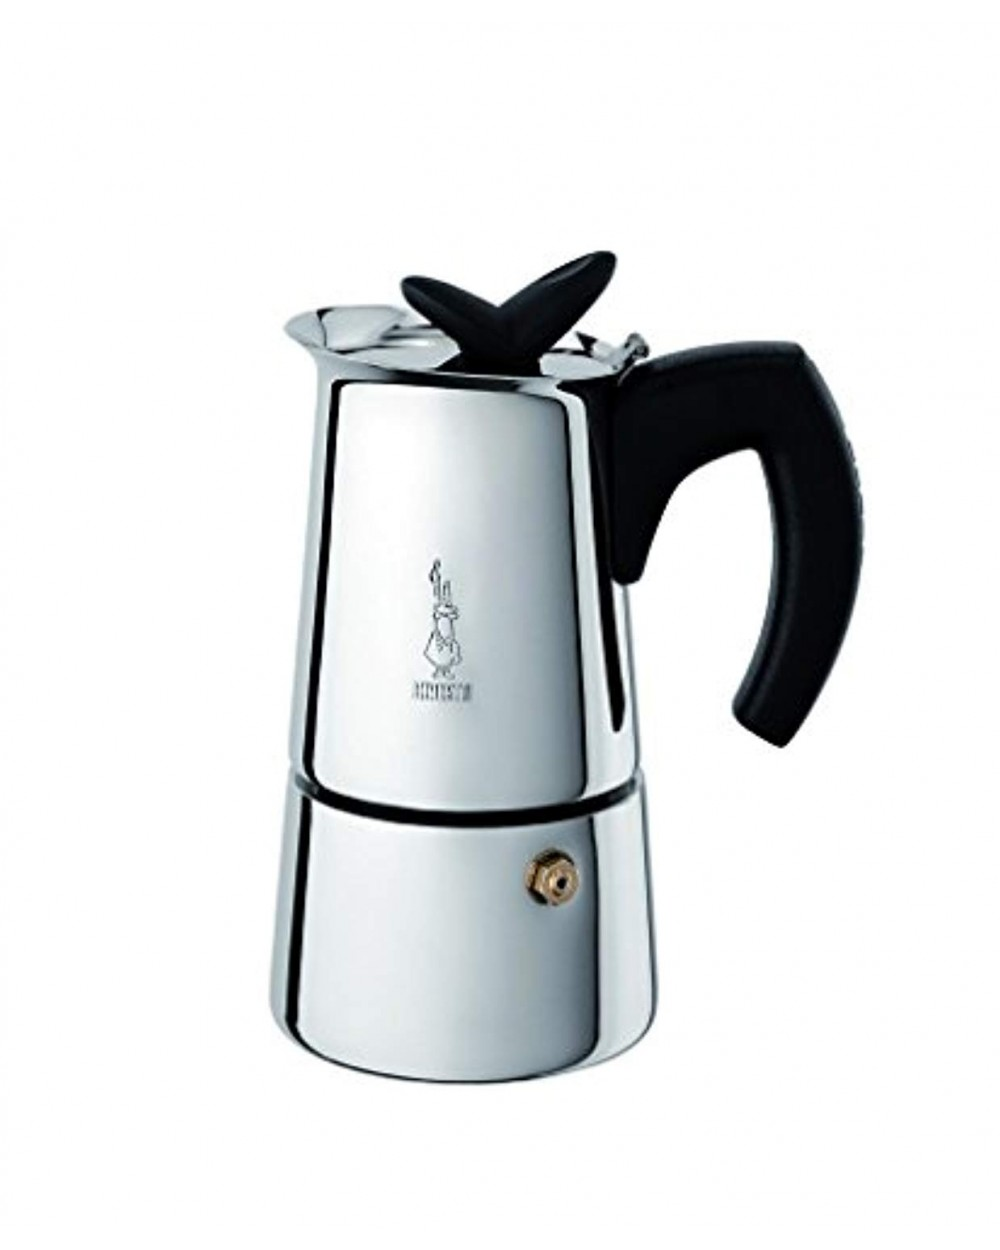 Bialetti Musa - Stove Top Restyling Espresso Coffee Maker - Stainless Steel - Various Sizes